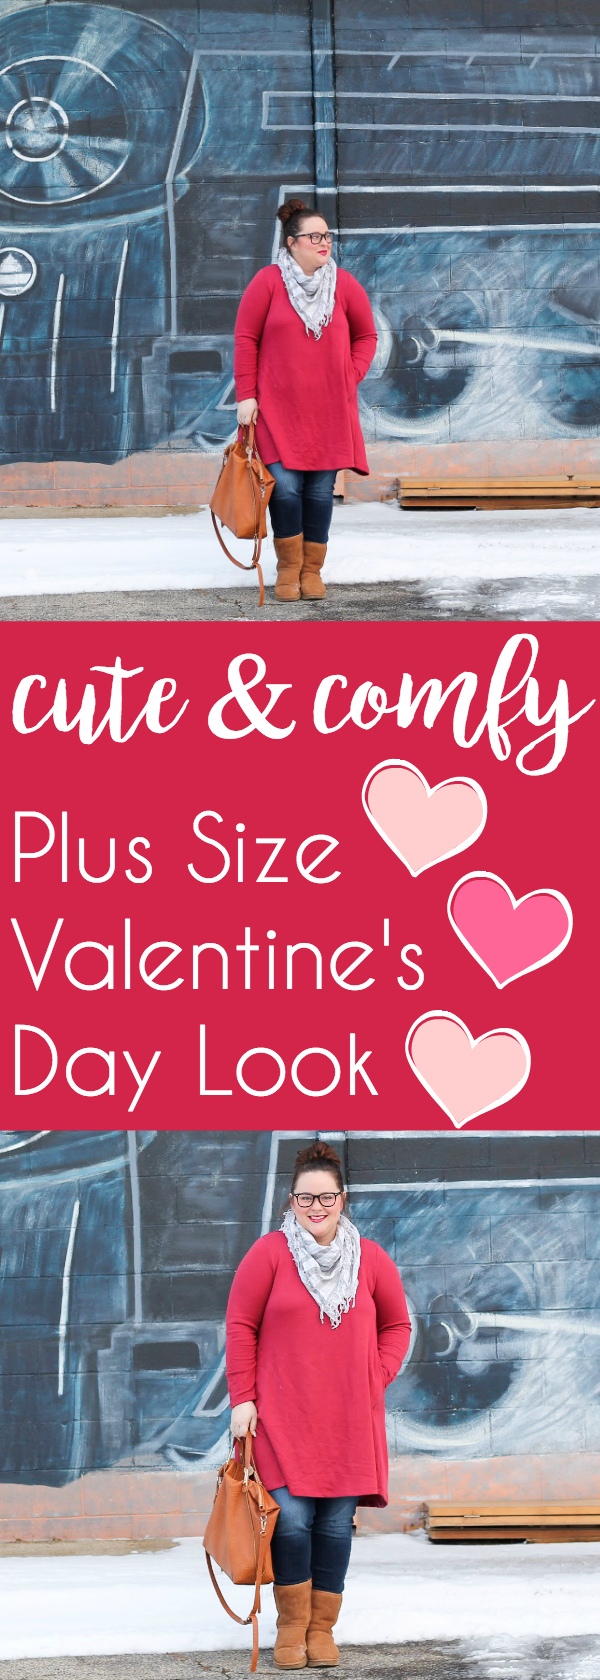 Cute and Comfy Valentine's Day Look